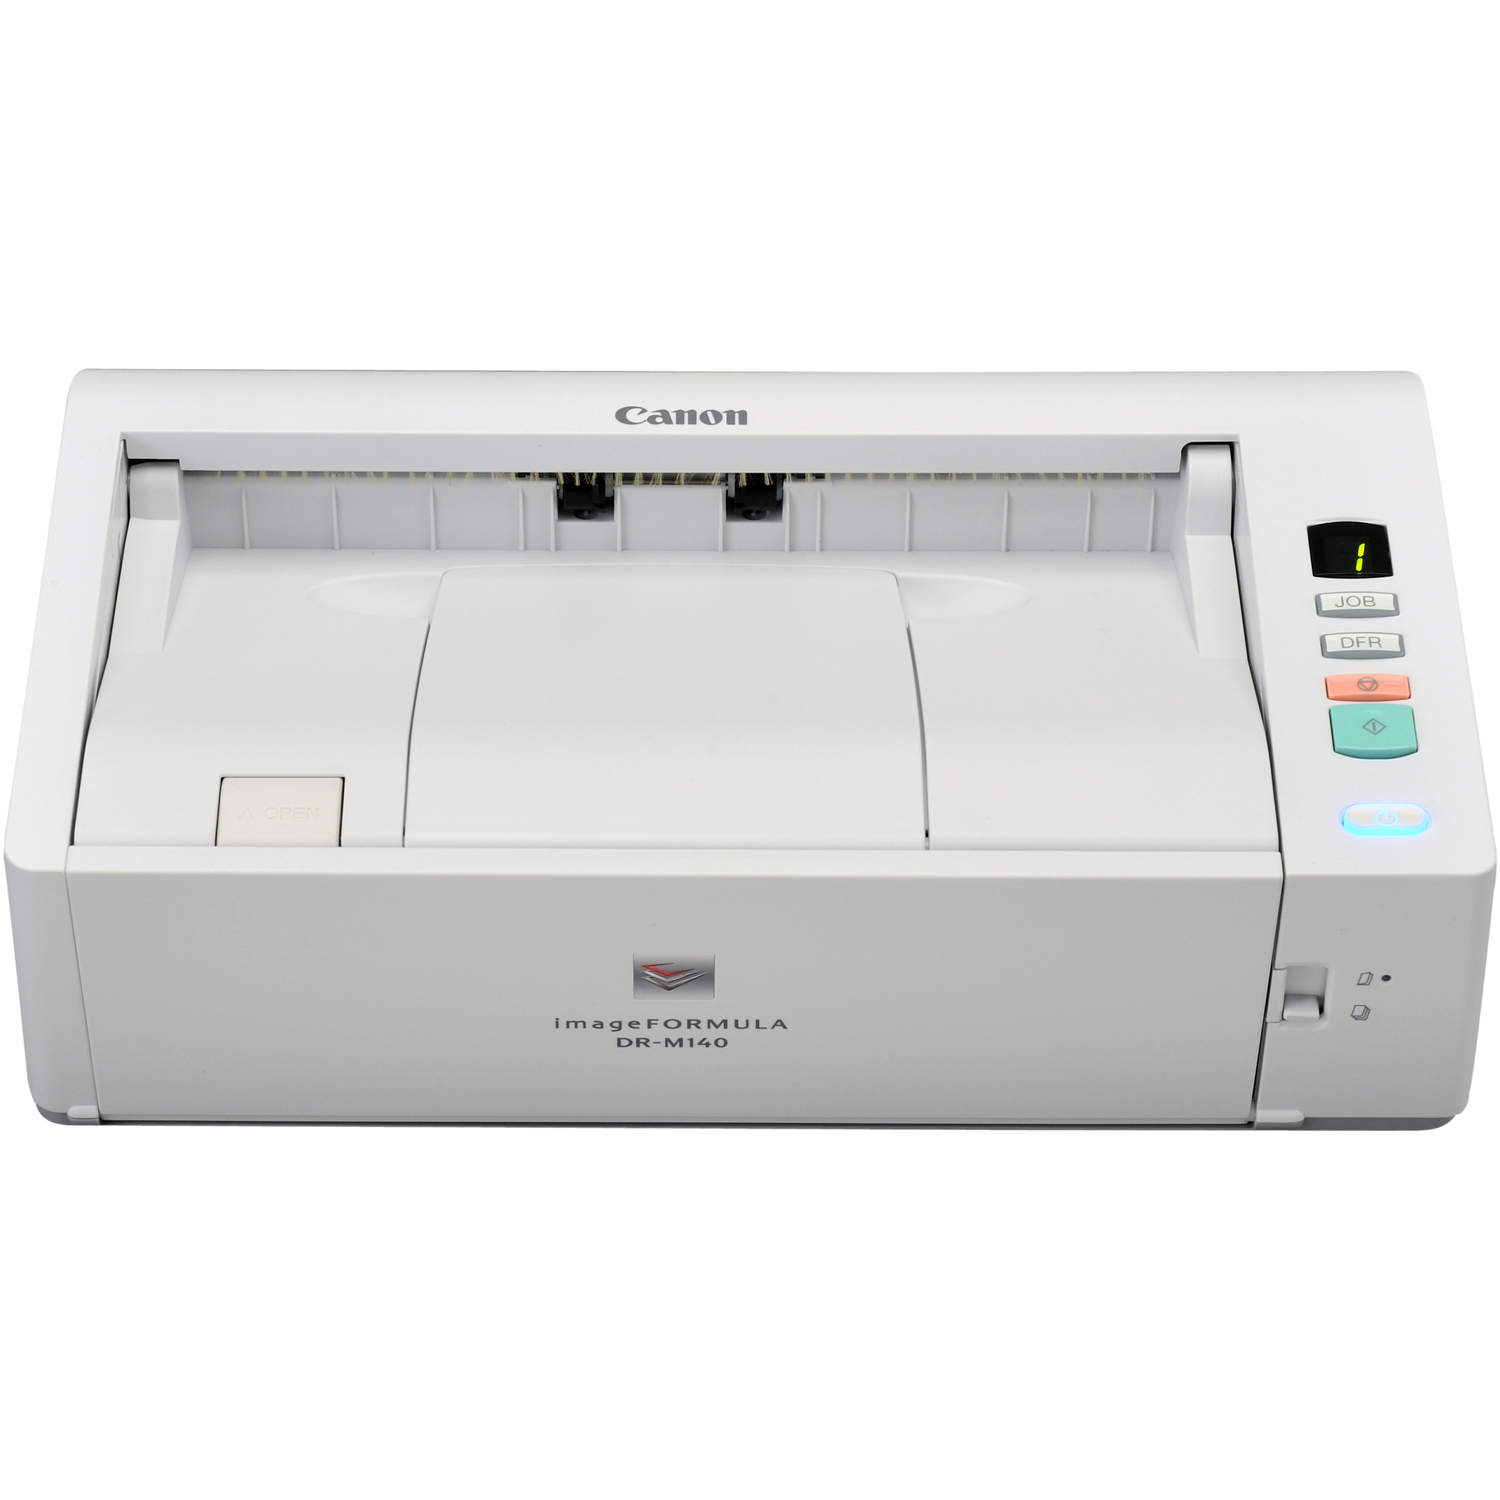 Canon imageFORMULA DR-M140 Sheetfed Scanner - 600 dpi Optical